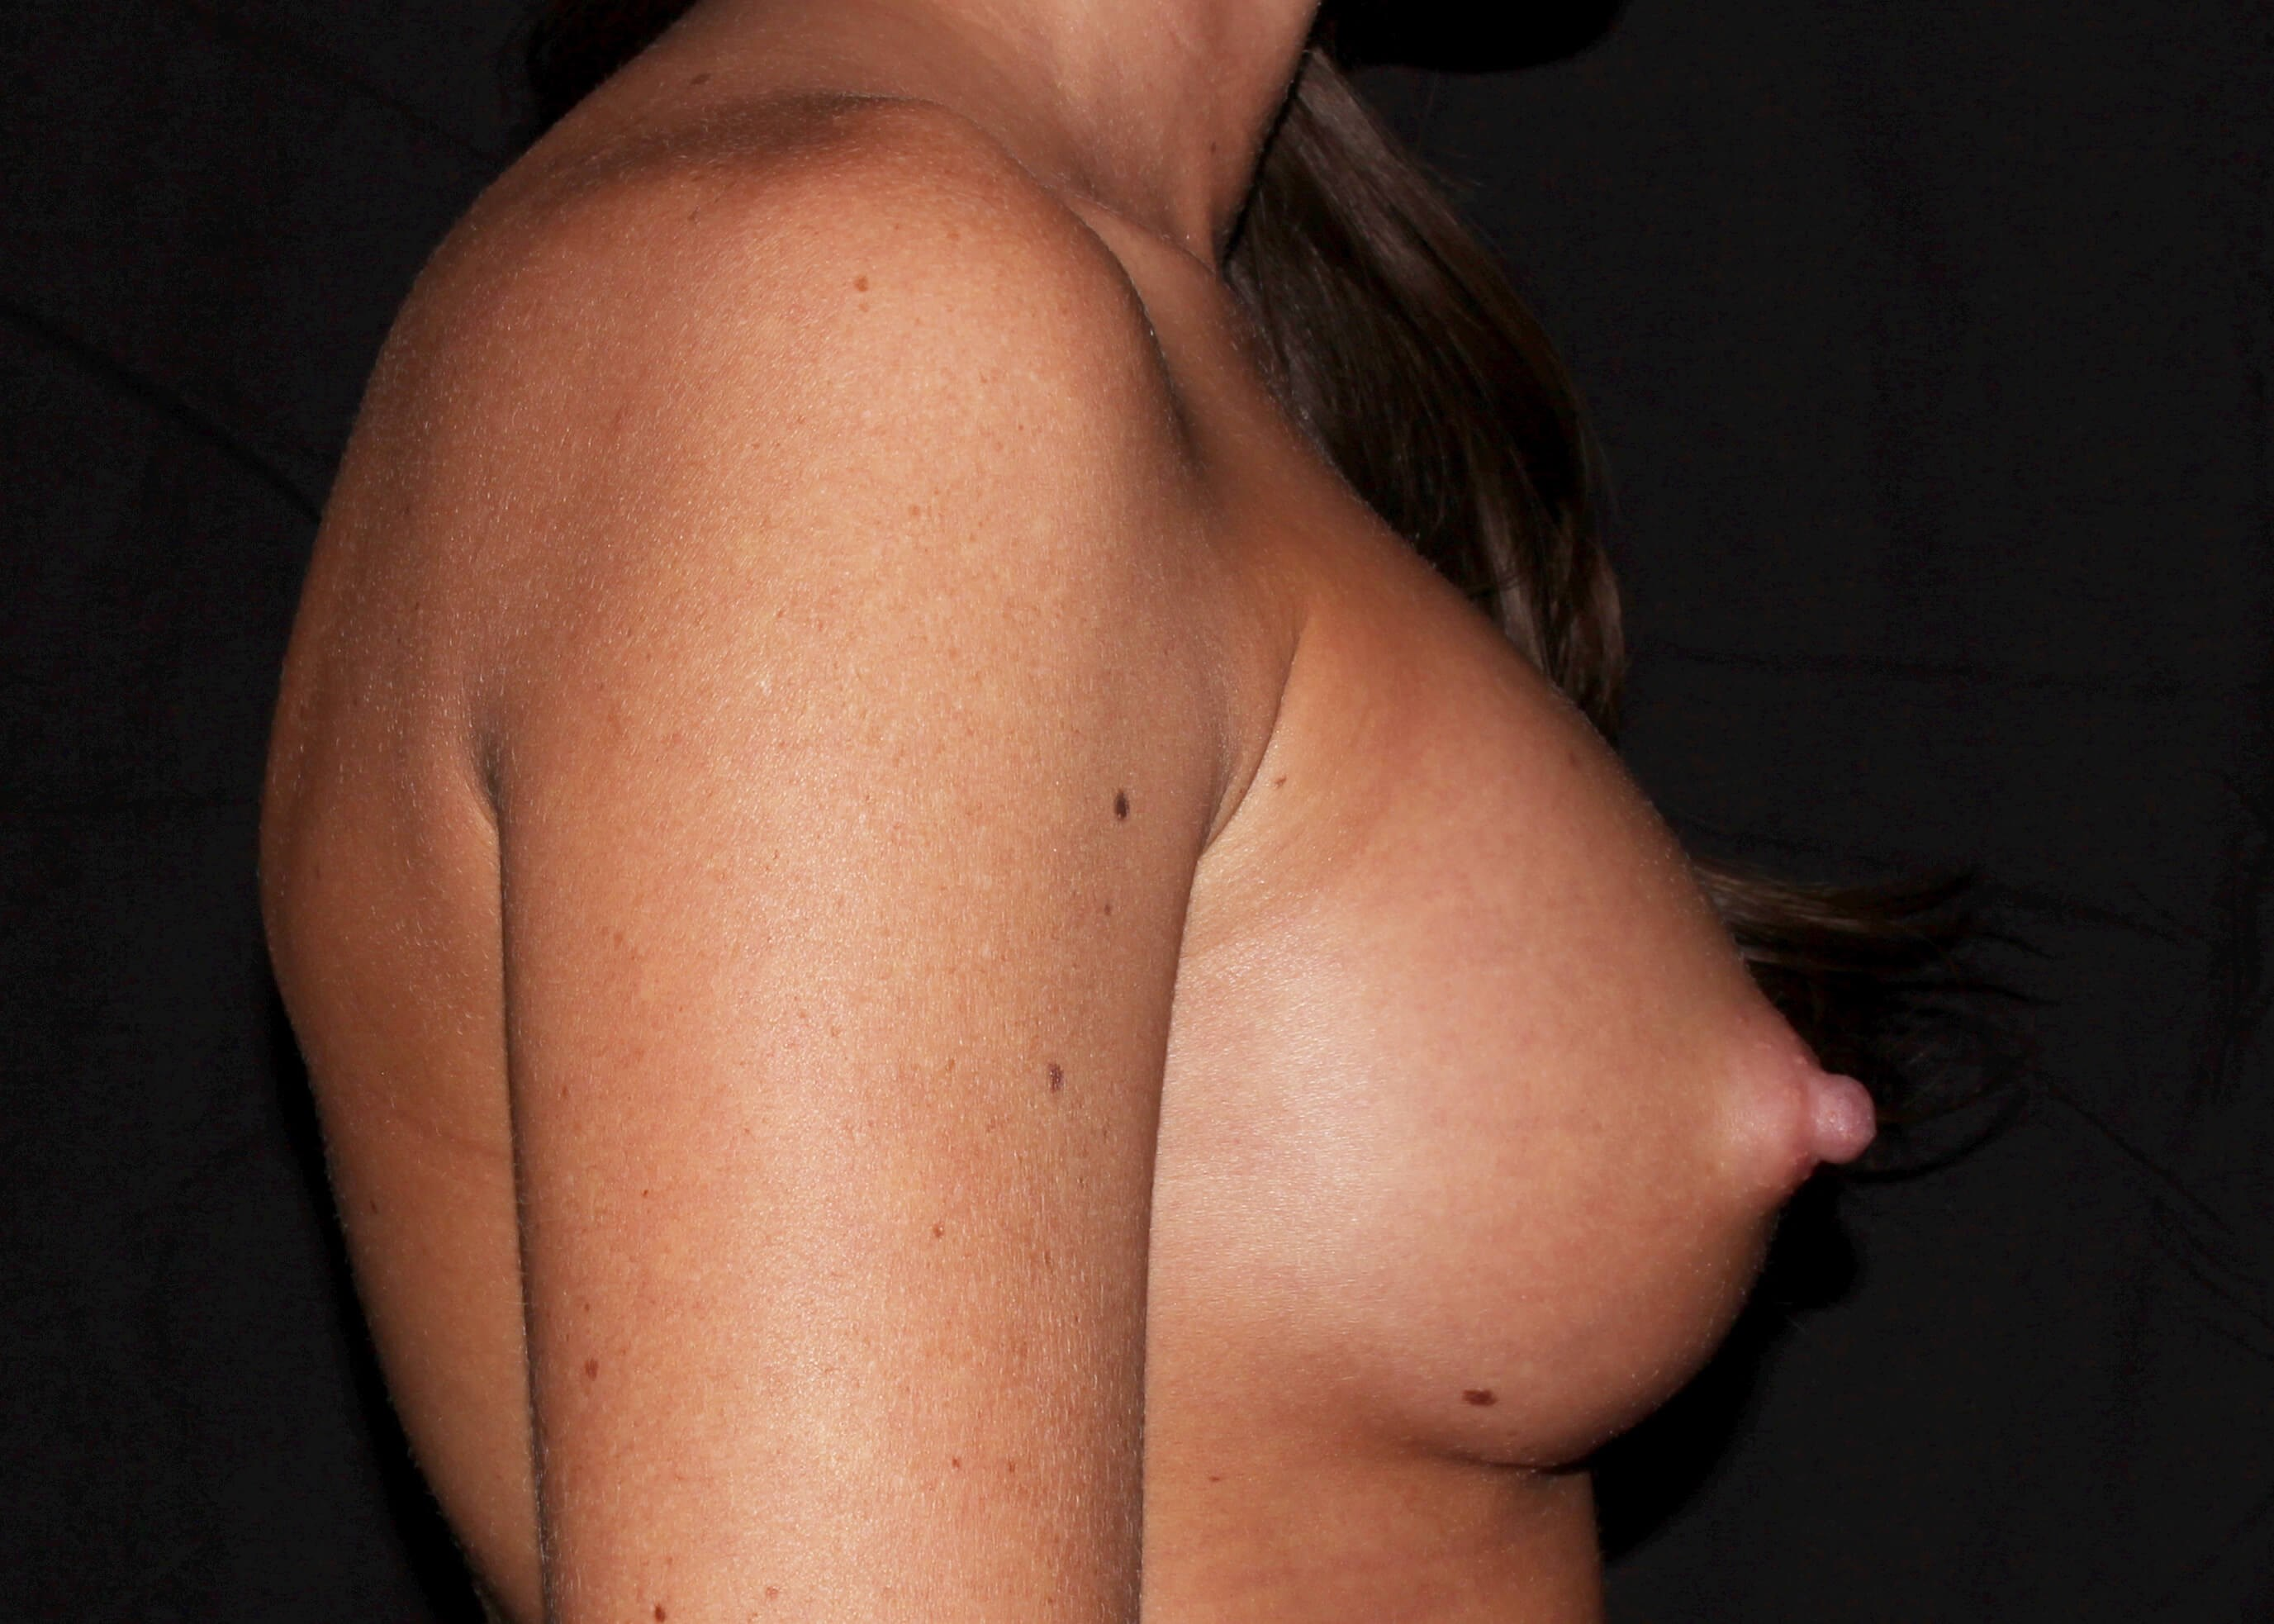 Breast Augmentation After Right Side - Right Side